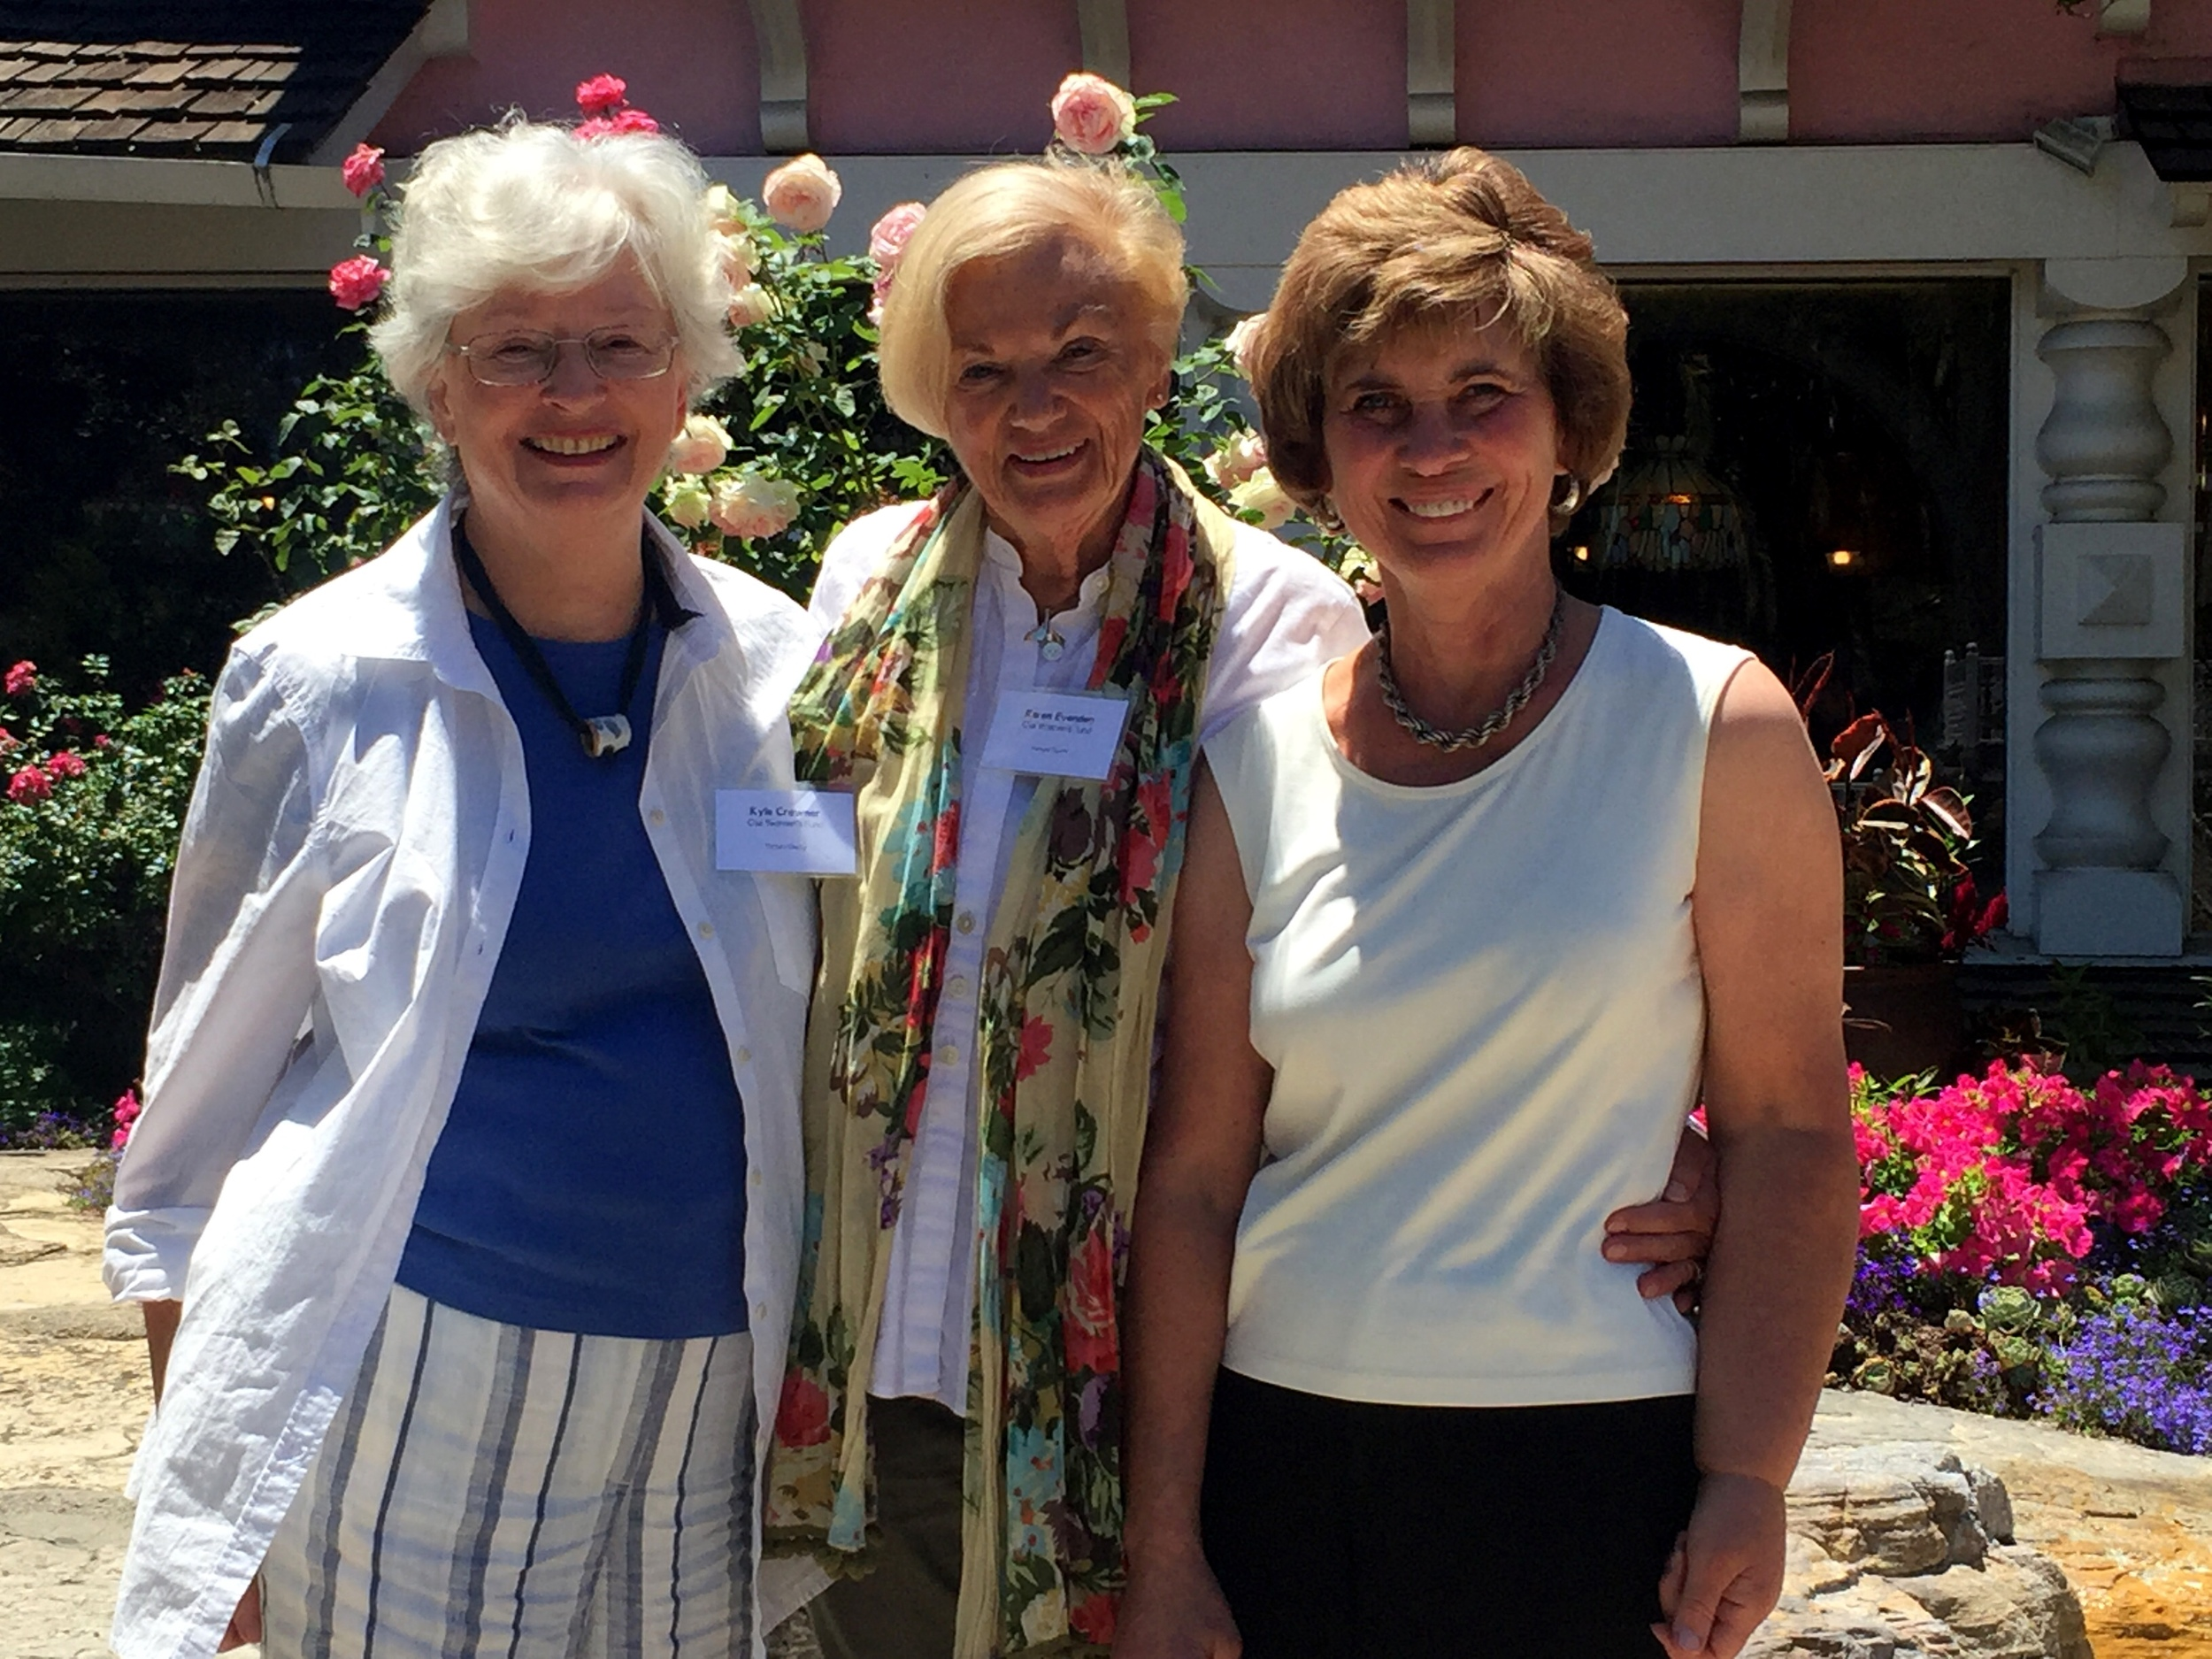 Ojai Women's Fund leaders Kyle Crowner, Karen Evenden, and Peggy Russell